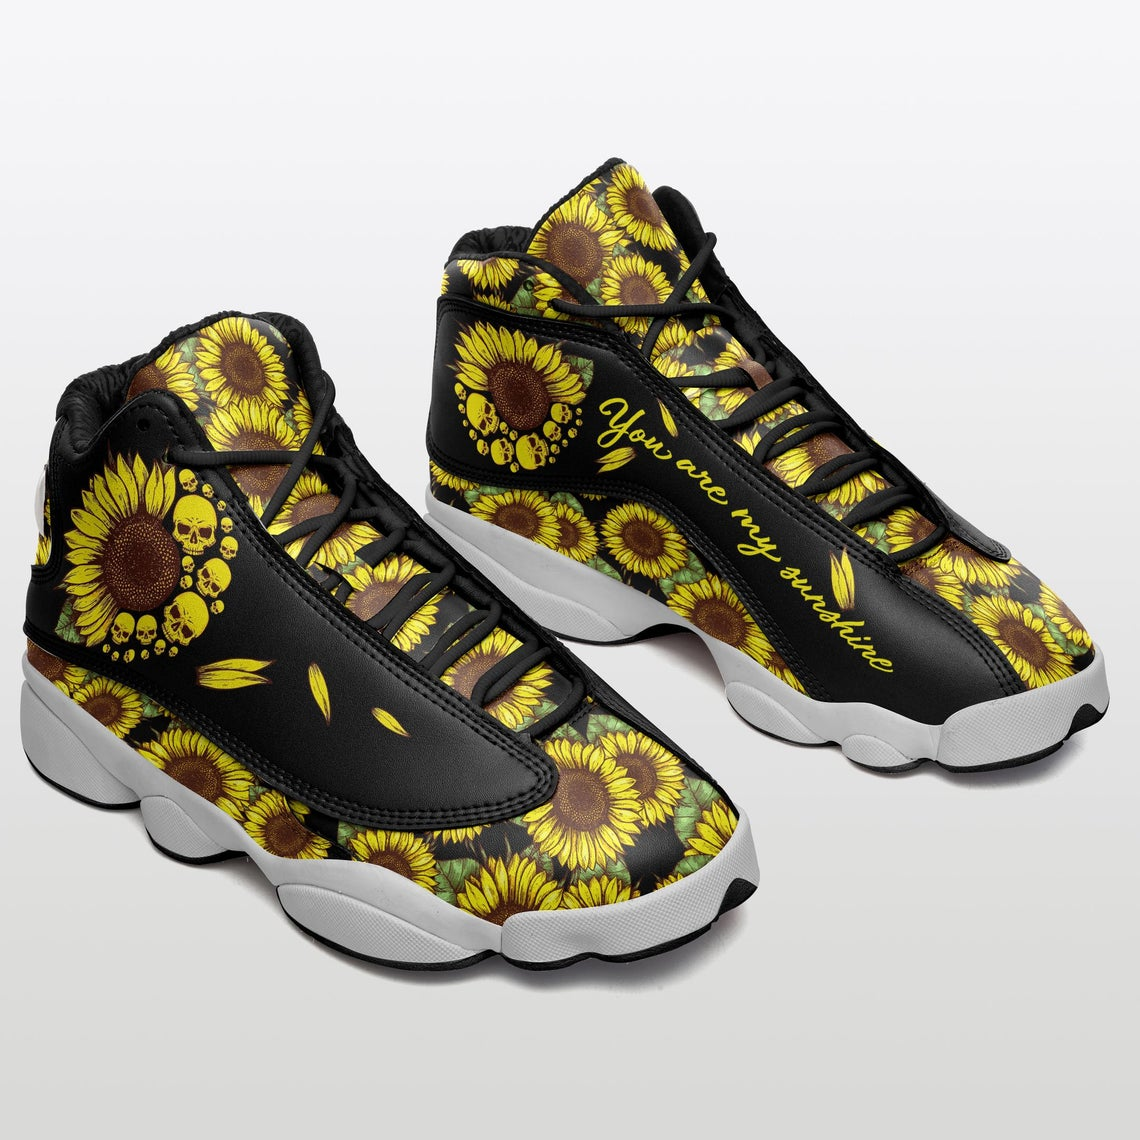 Sunflower Skull Sku 31 Air Jordan Shoes